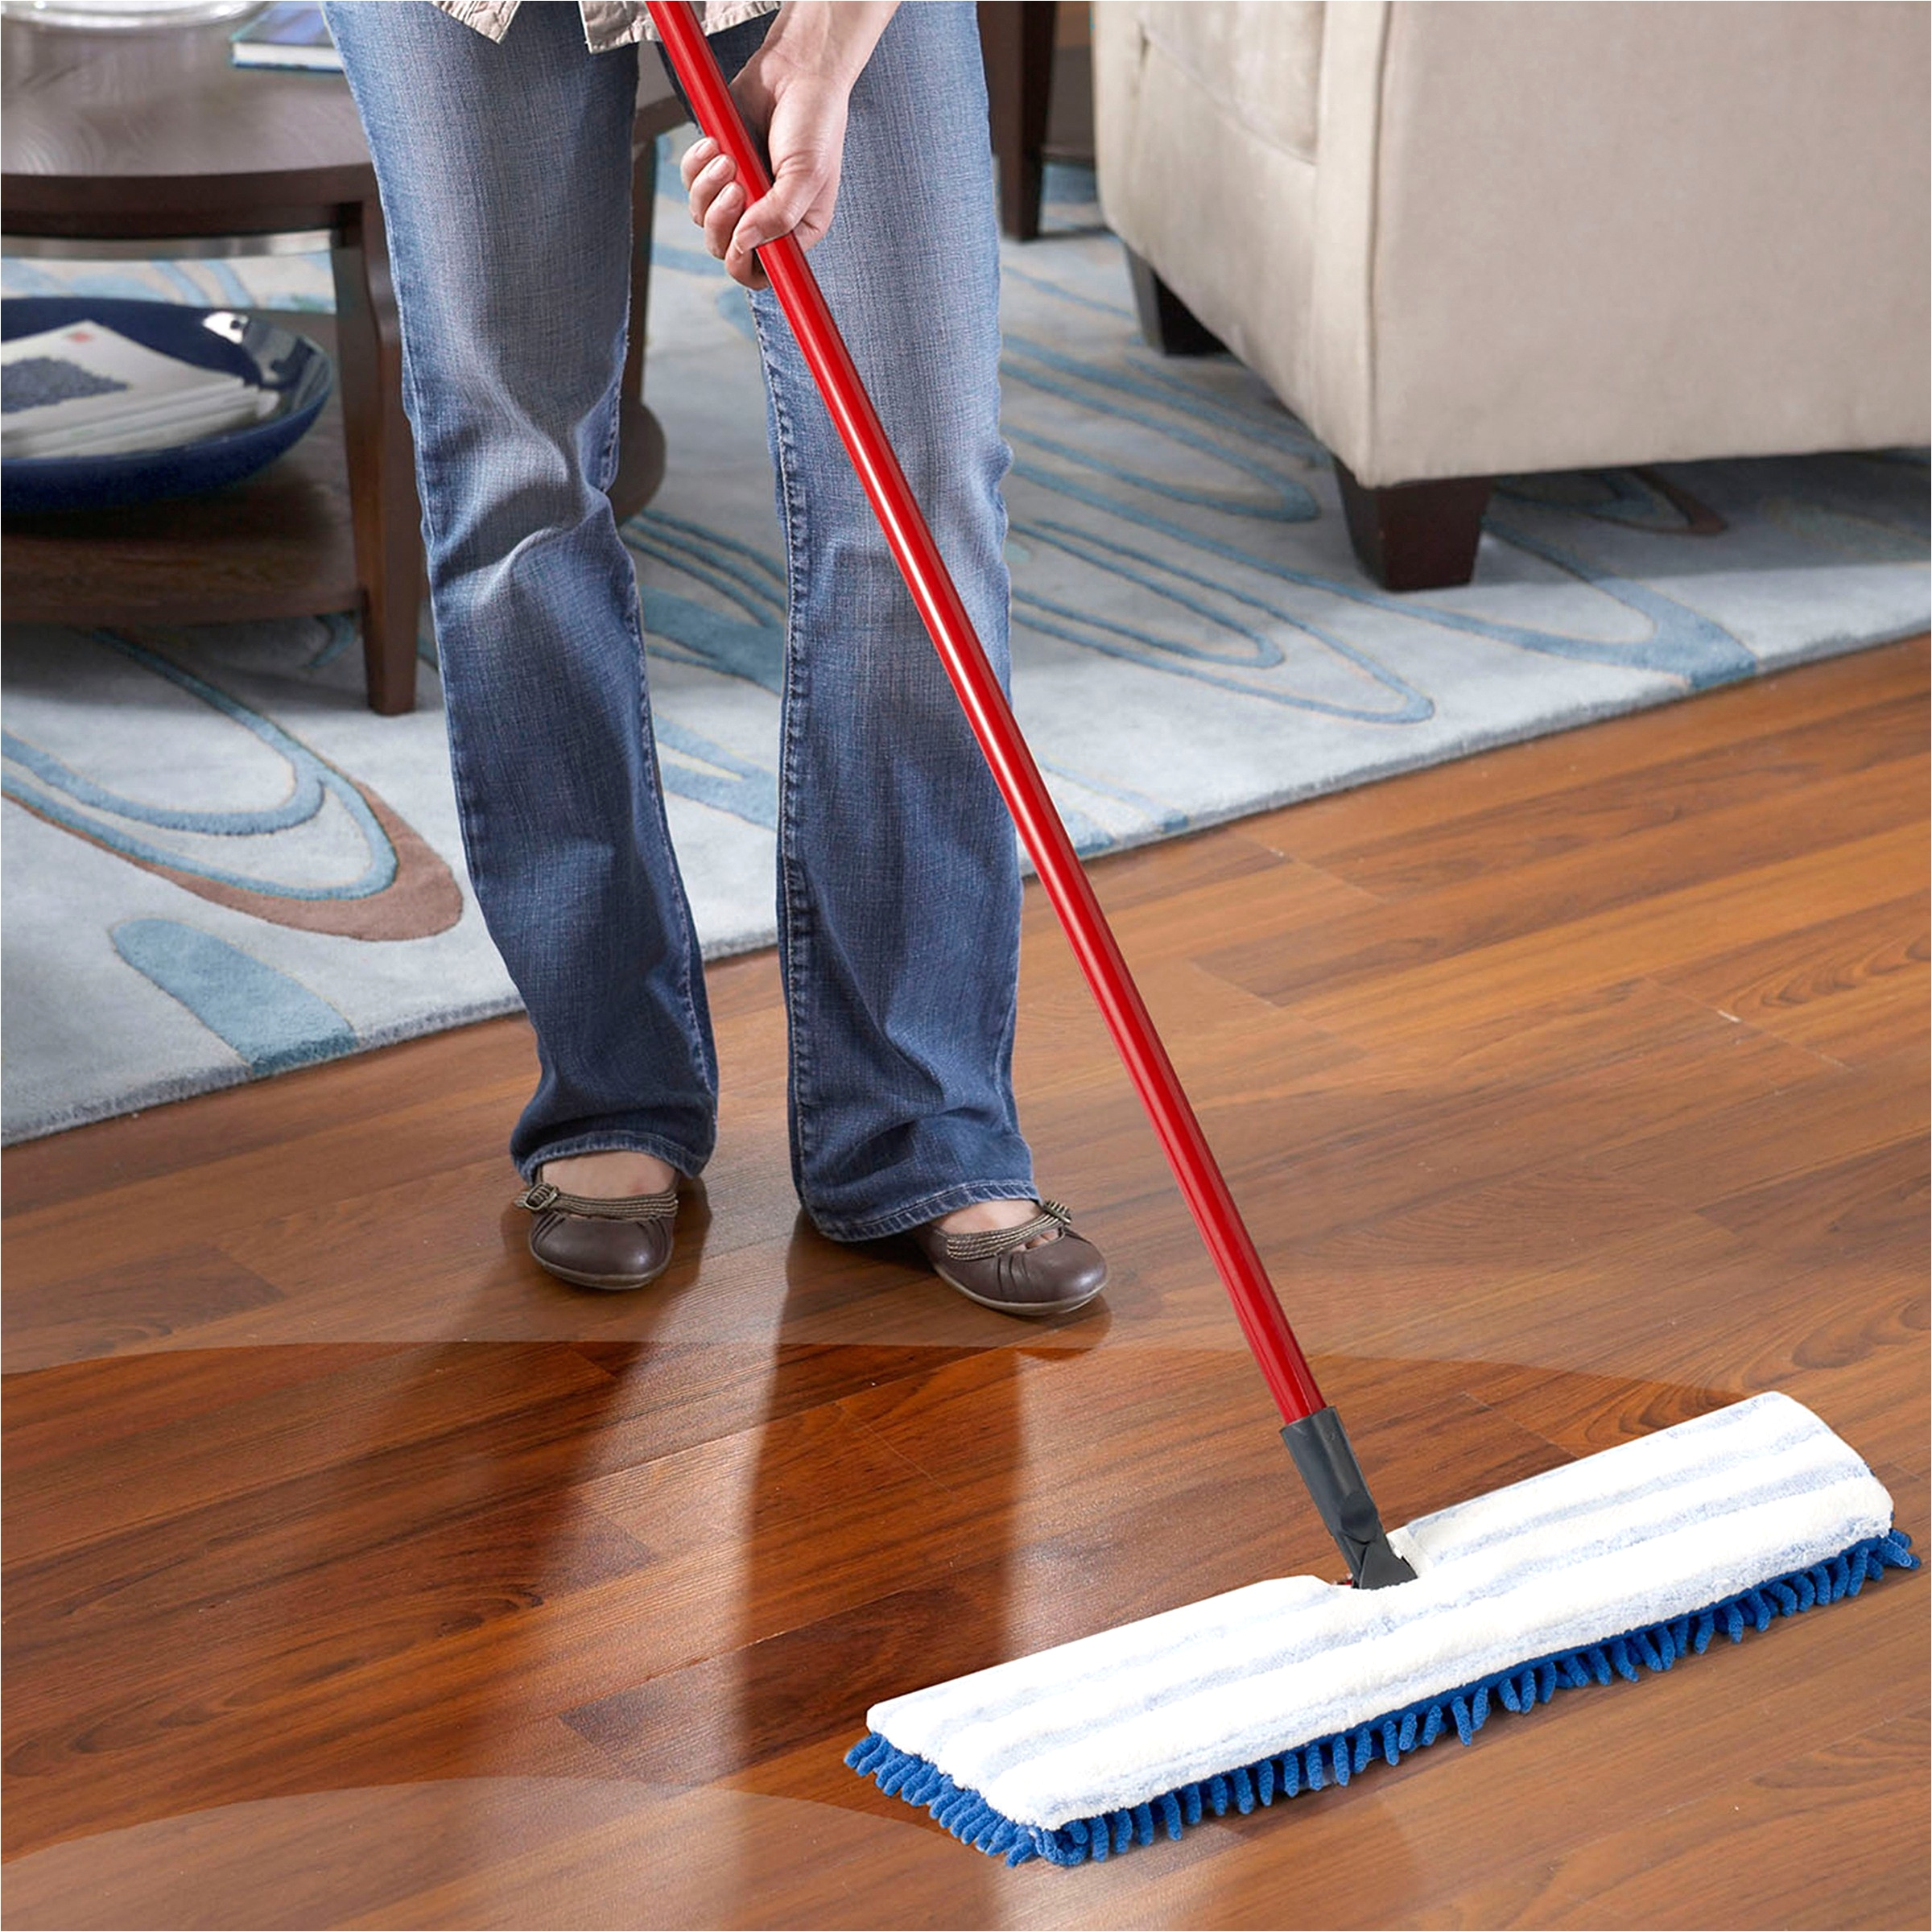 Best Vacuum for Pet Hair Wood Floors and Carpet 50 Inspirational Best Mop for Ceramic Tile Floors Pictures 50